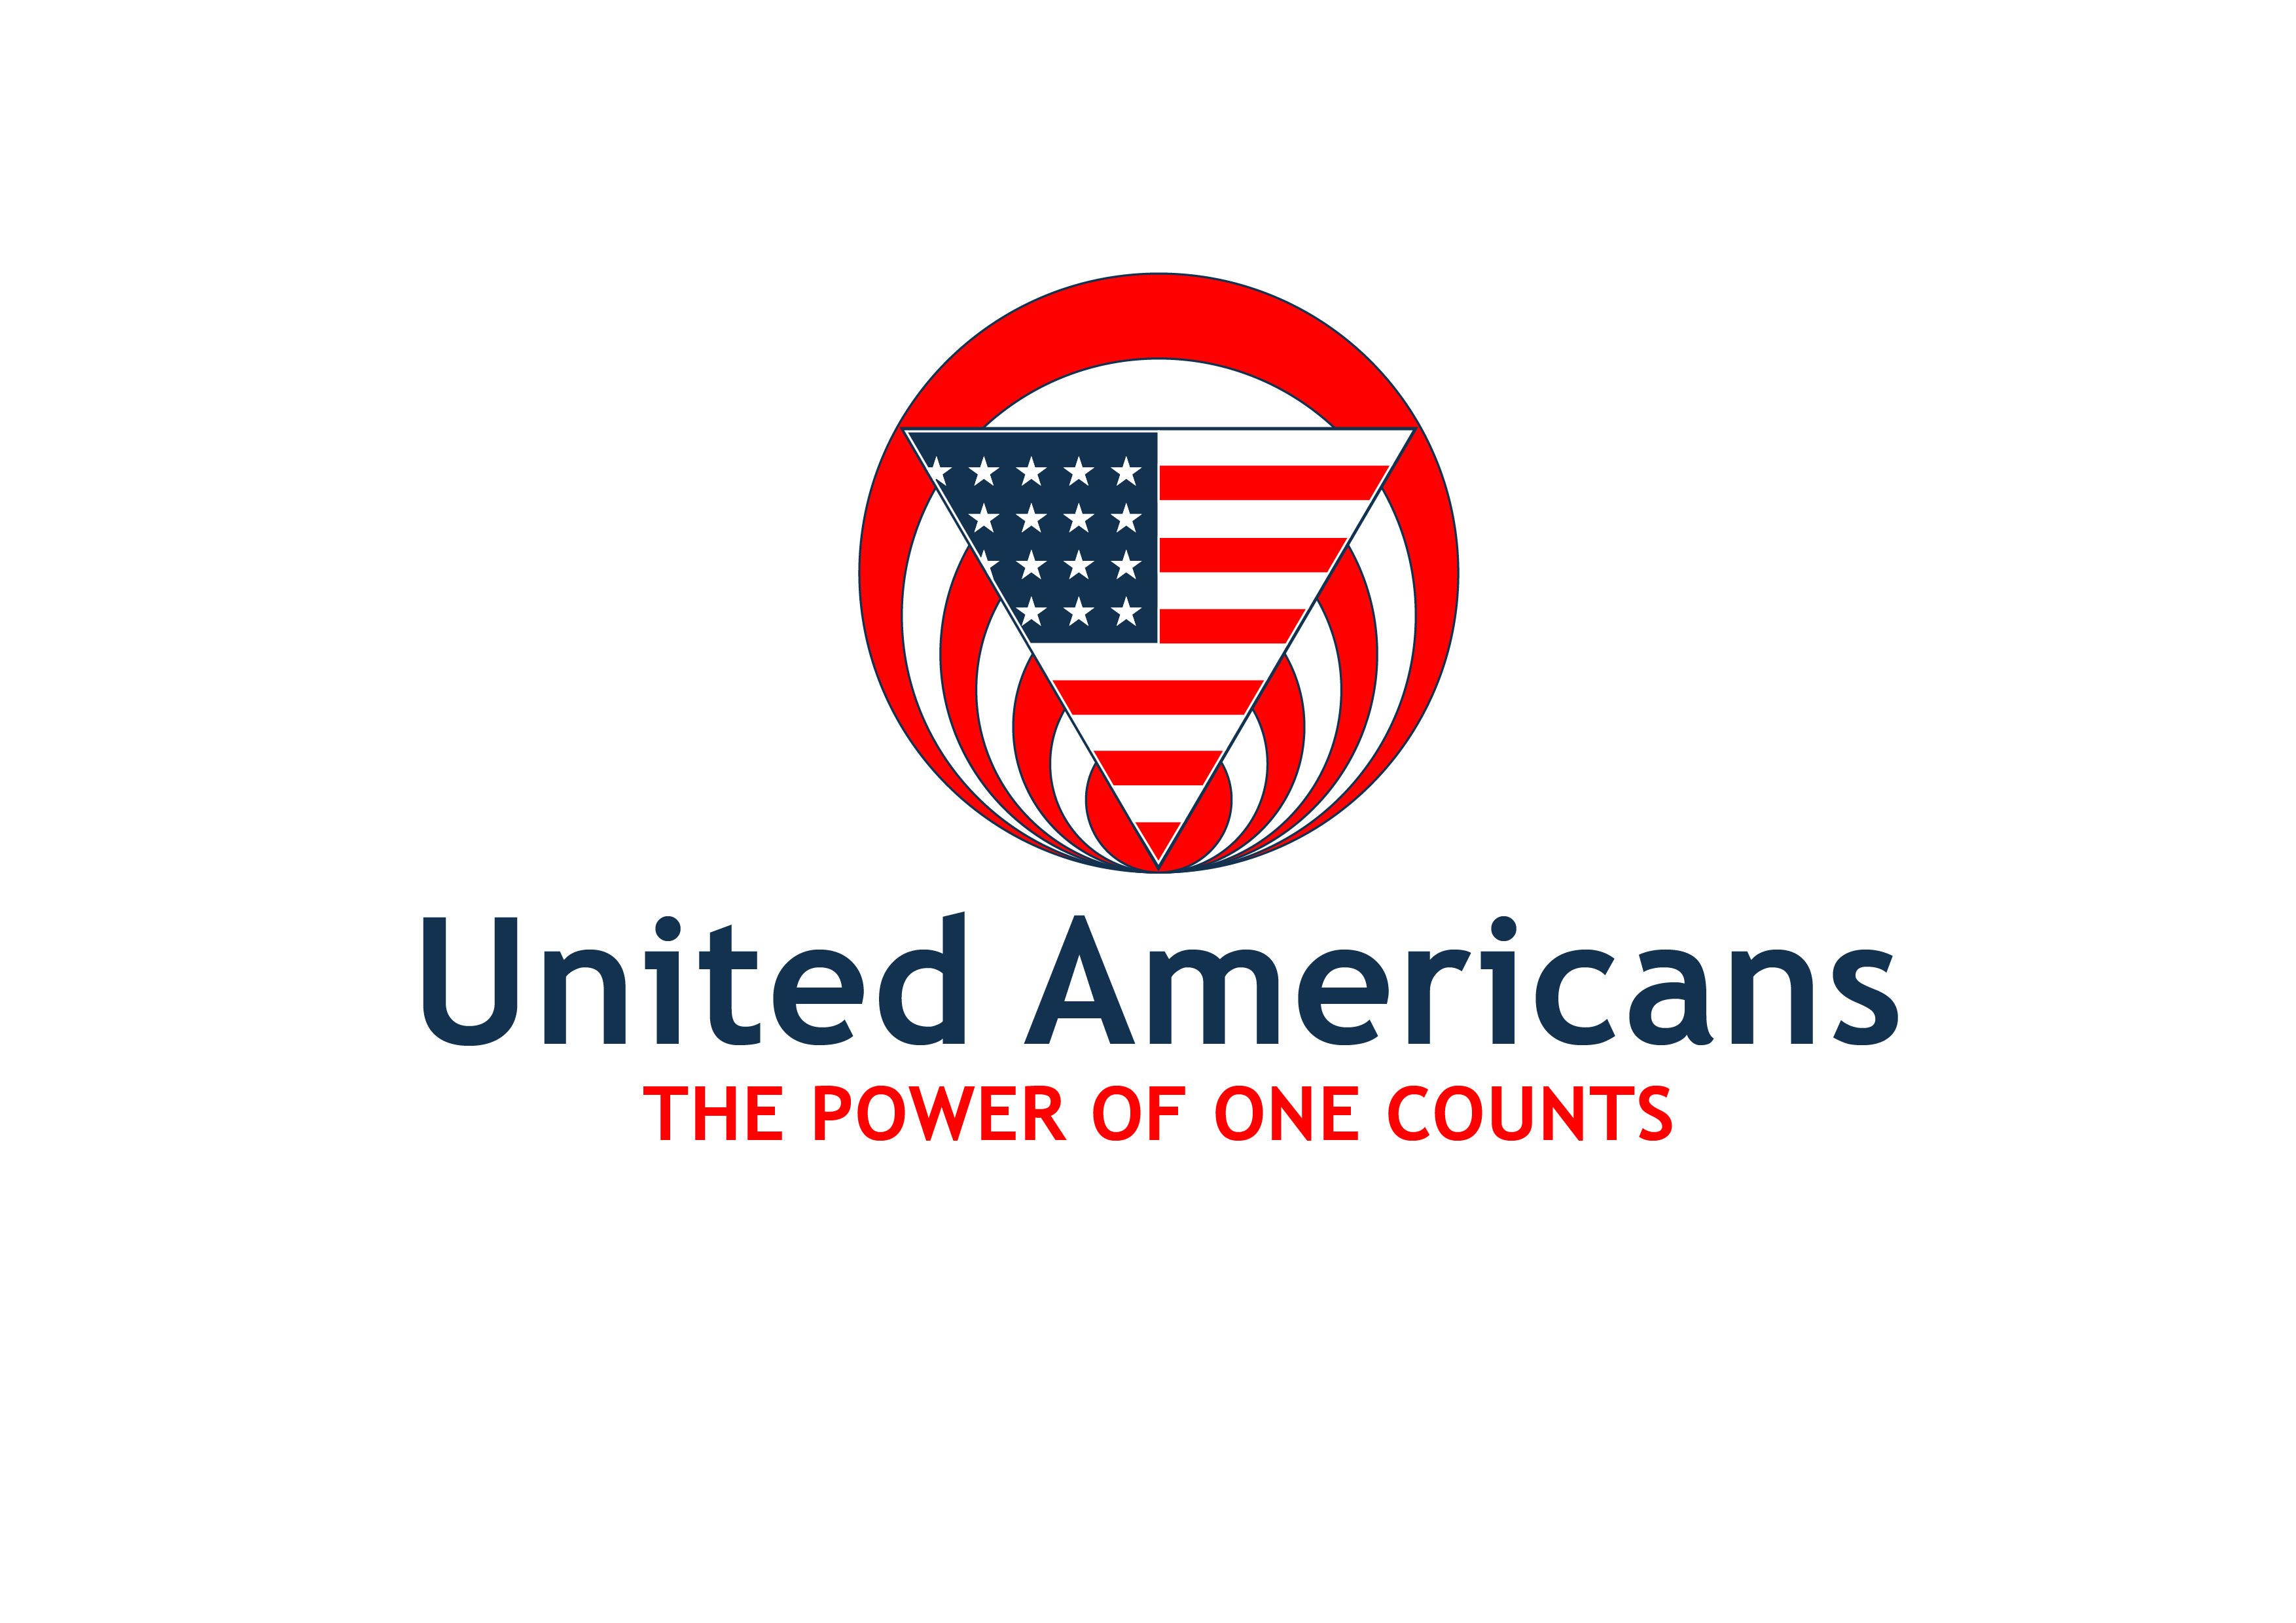 Logo Design by 3draw - Entry No. 54 in the Logo Design Contest Creative Logo Design for United Americans.